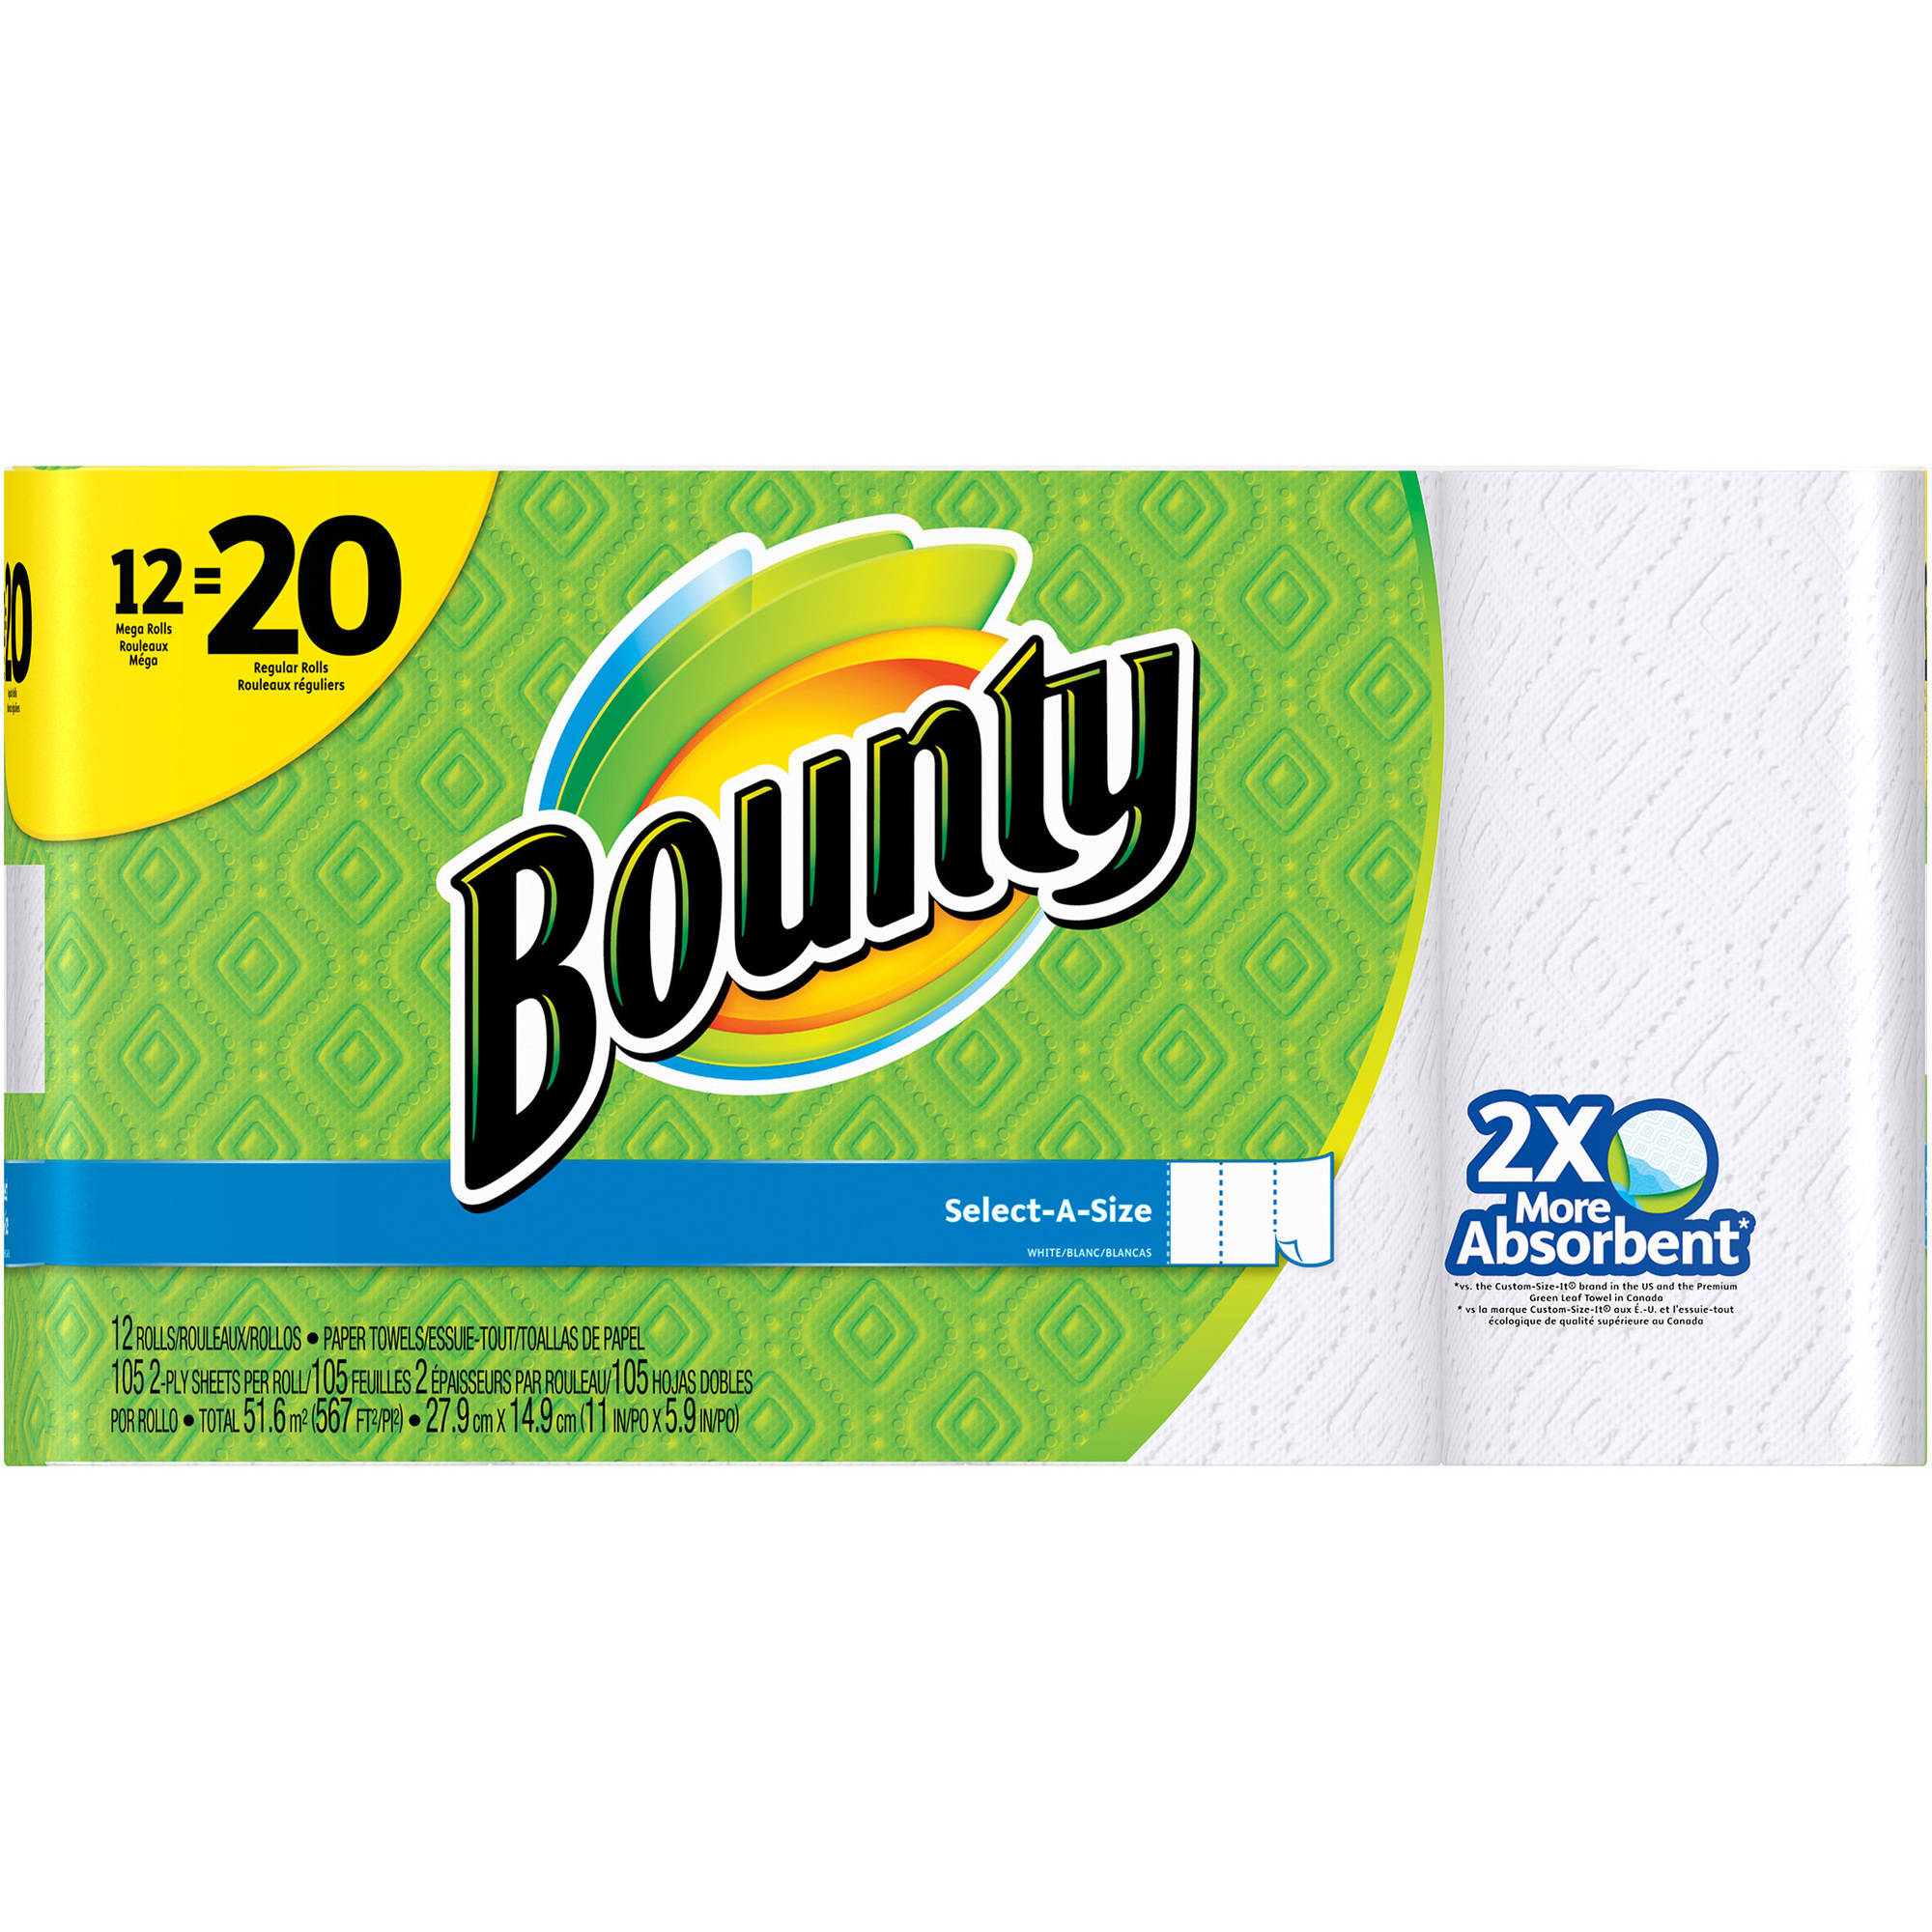 Bounty Select-a-Size Mega Roll Paper Towels, 105 sheets, 12 rolls